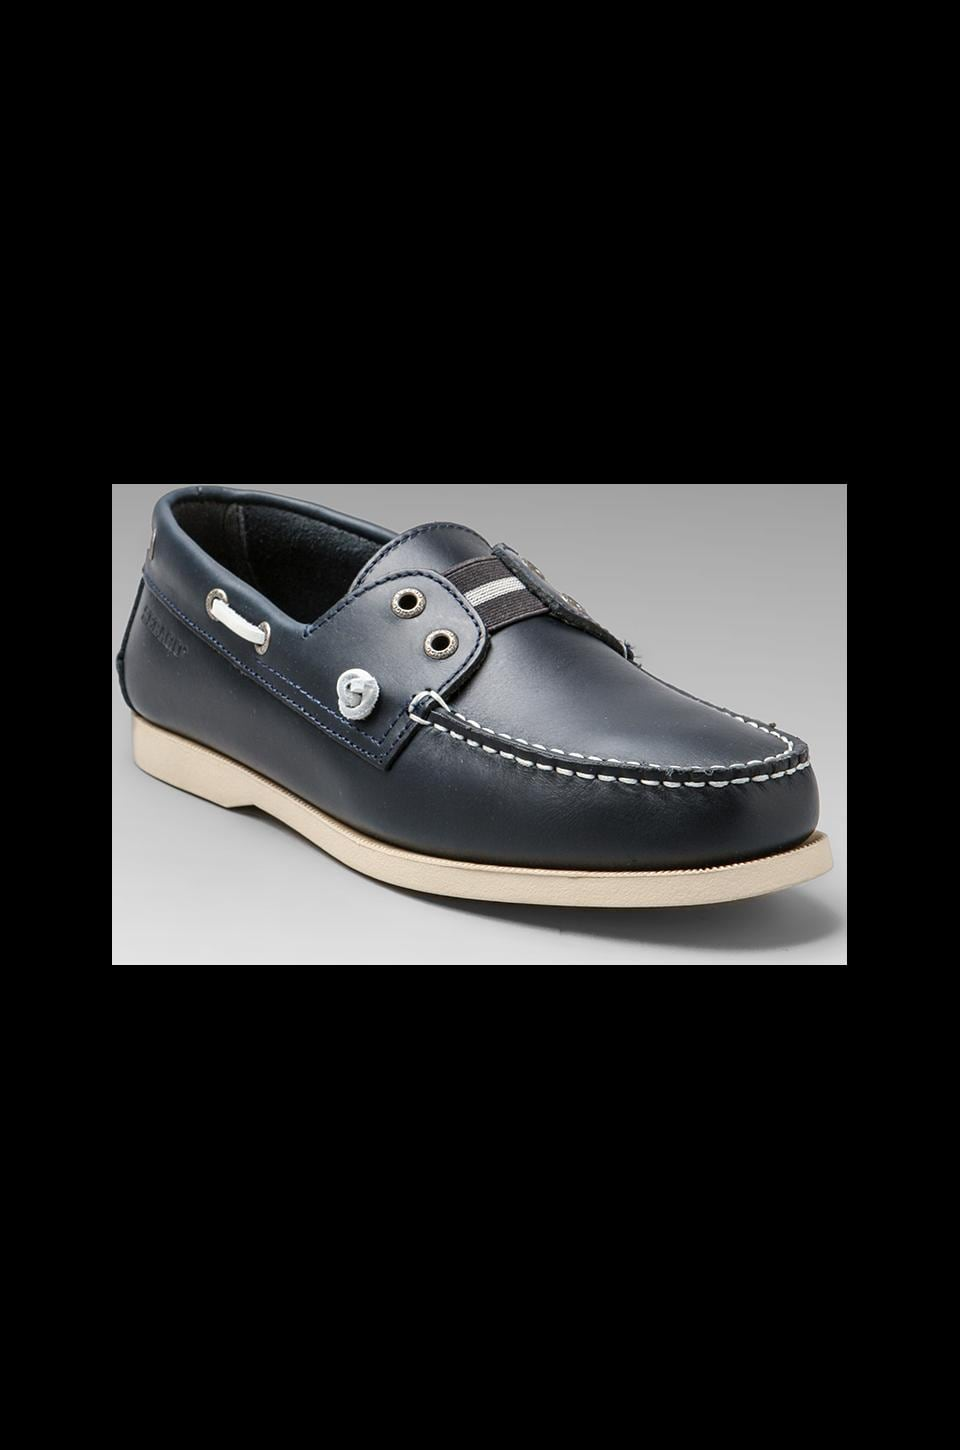 Sebago Wharf Slip-On in Navy